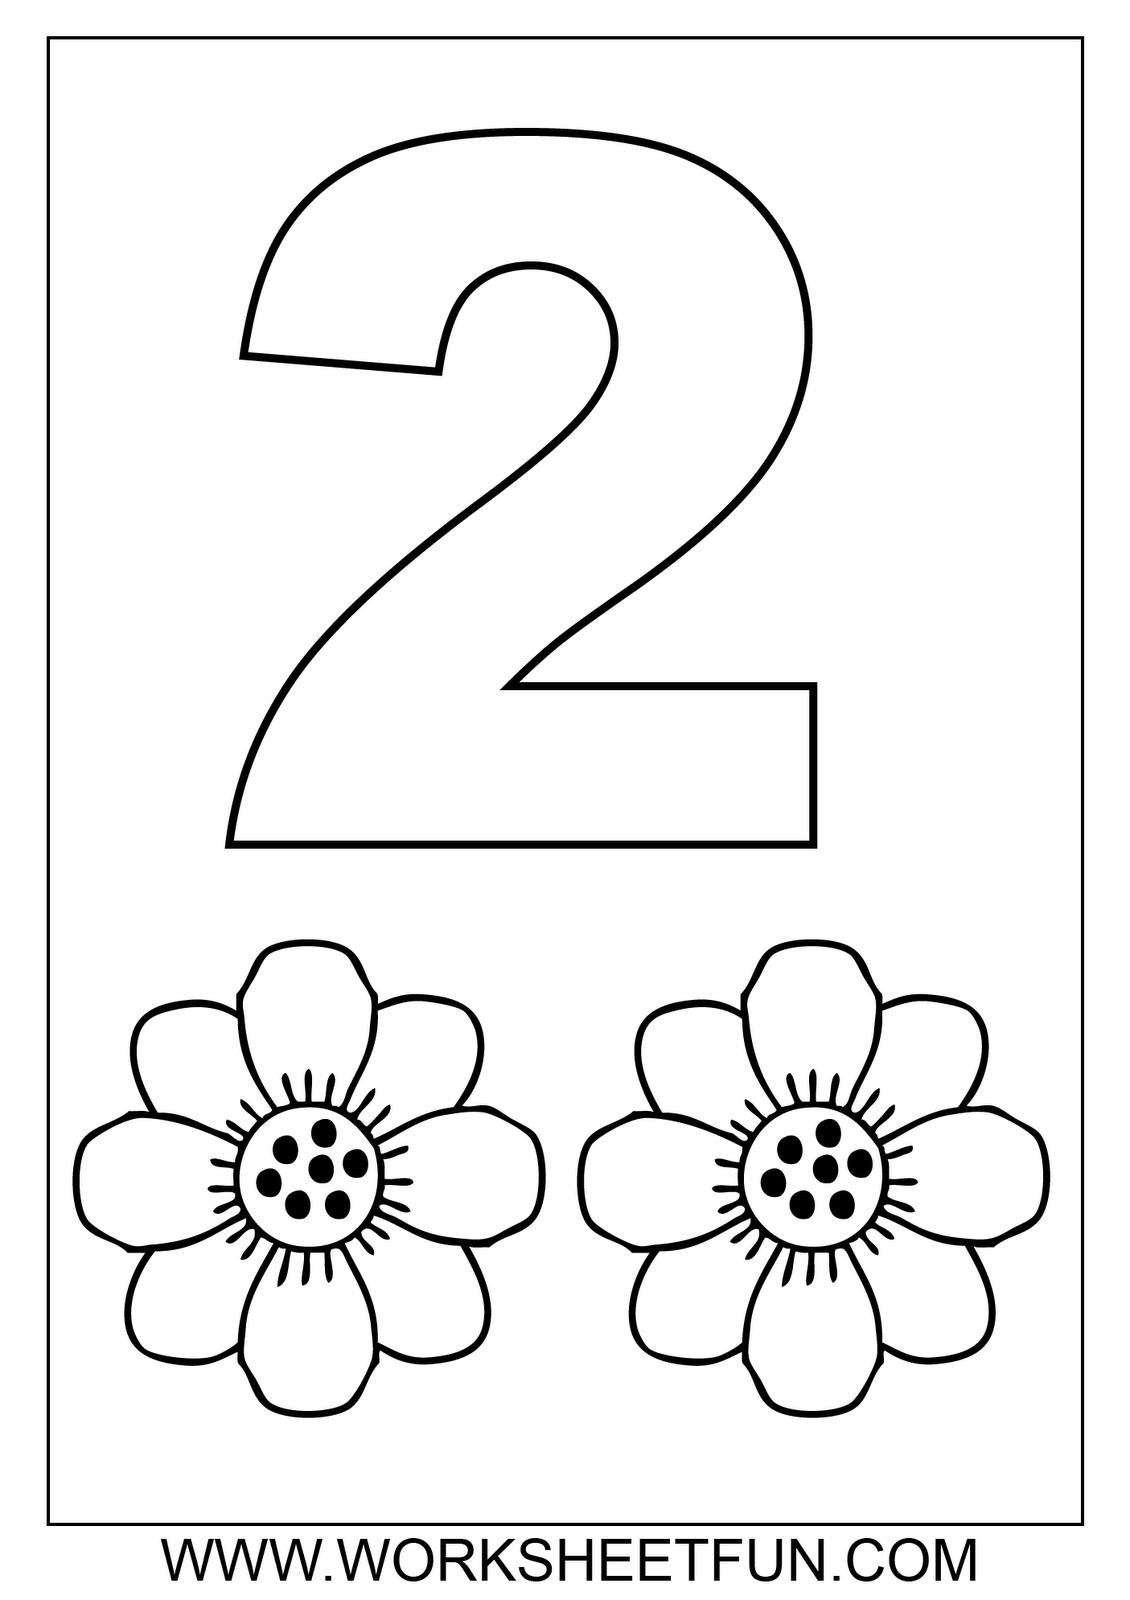 Free coloring pages for kindergarten printable - Free Math Worksheets Number Coloring